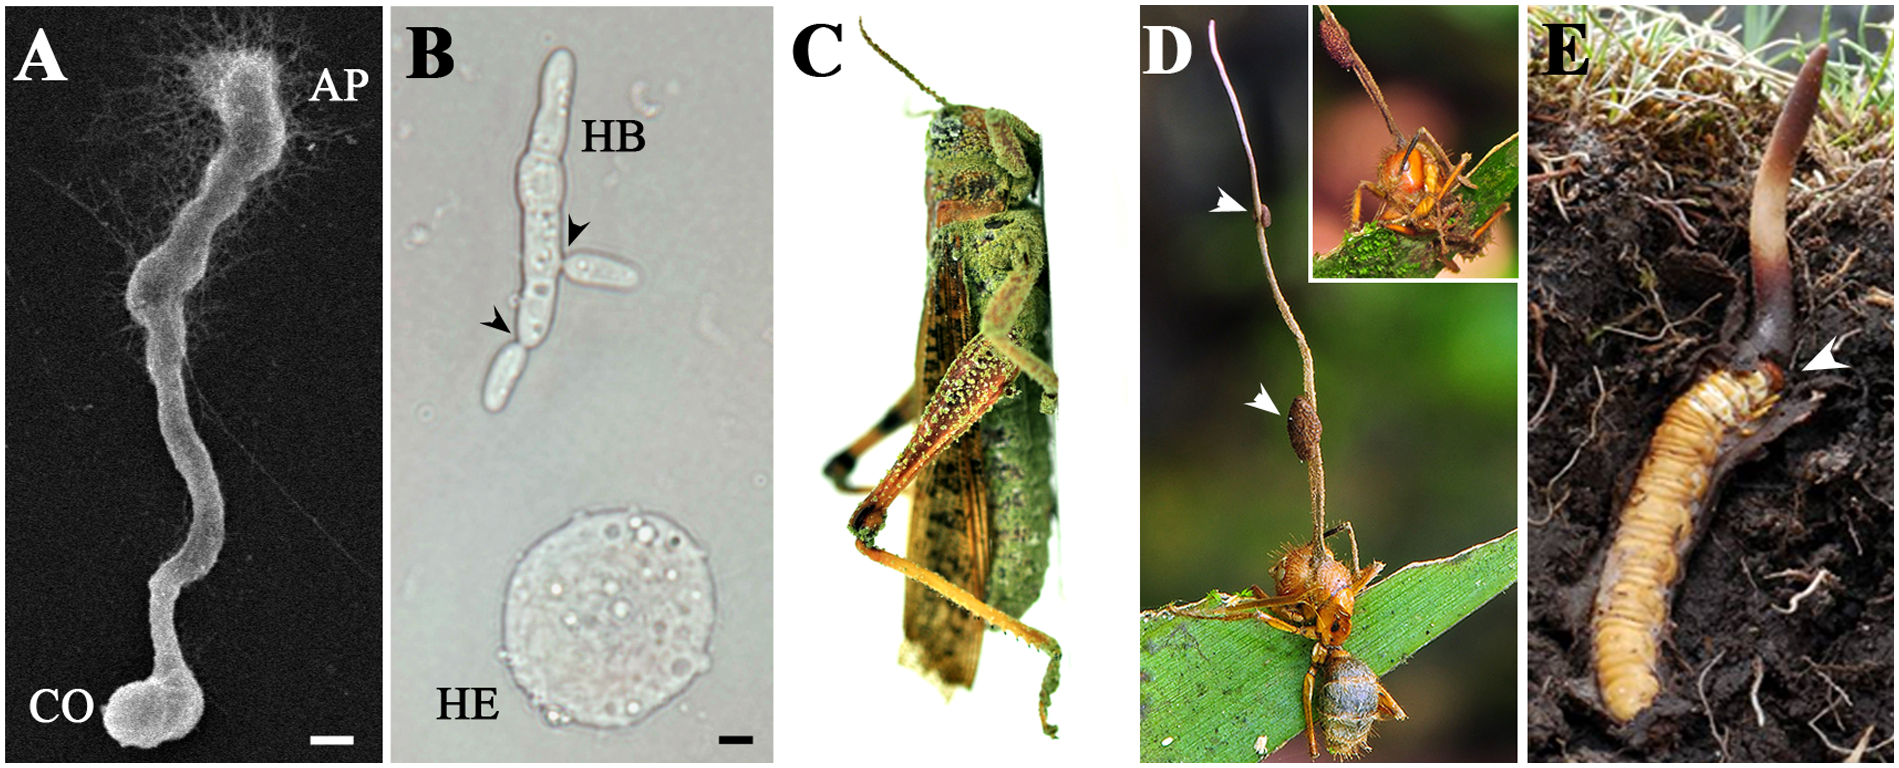 Micro- and macrophenotypes related to fungal infection and colonization of insect hosts.